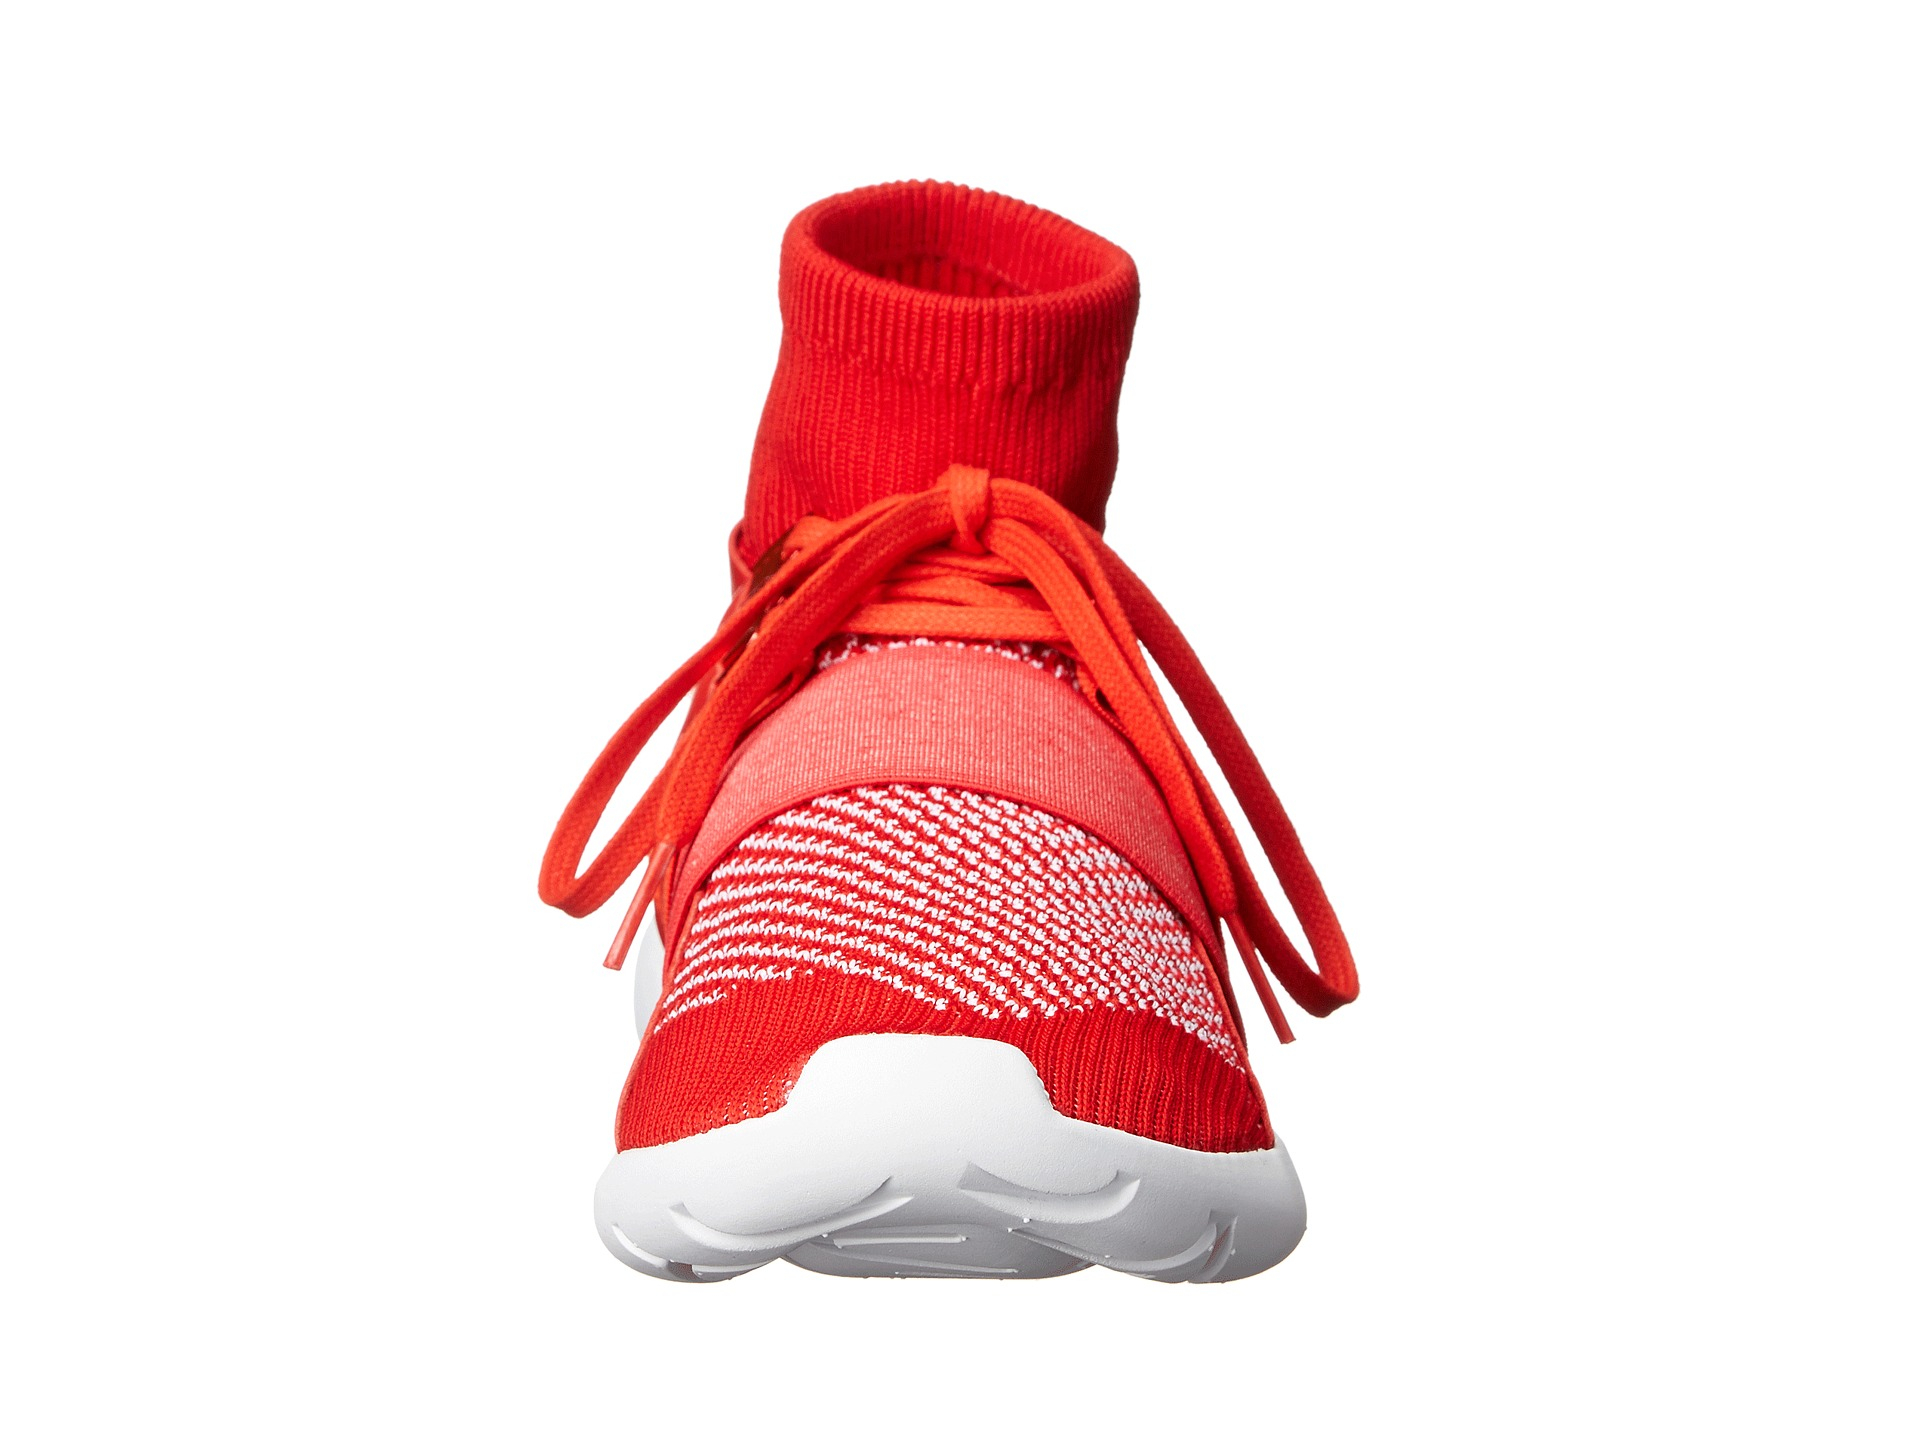 Y-3 Qasa Elle Lace Sneakers in Red